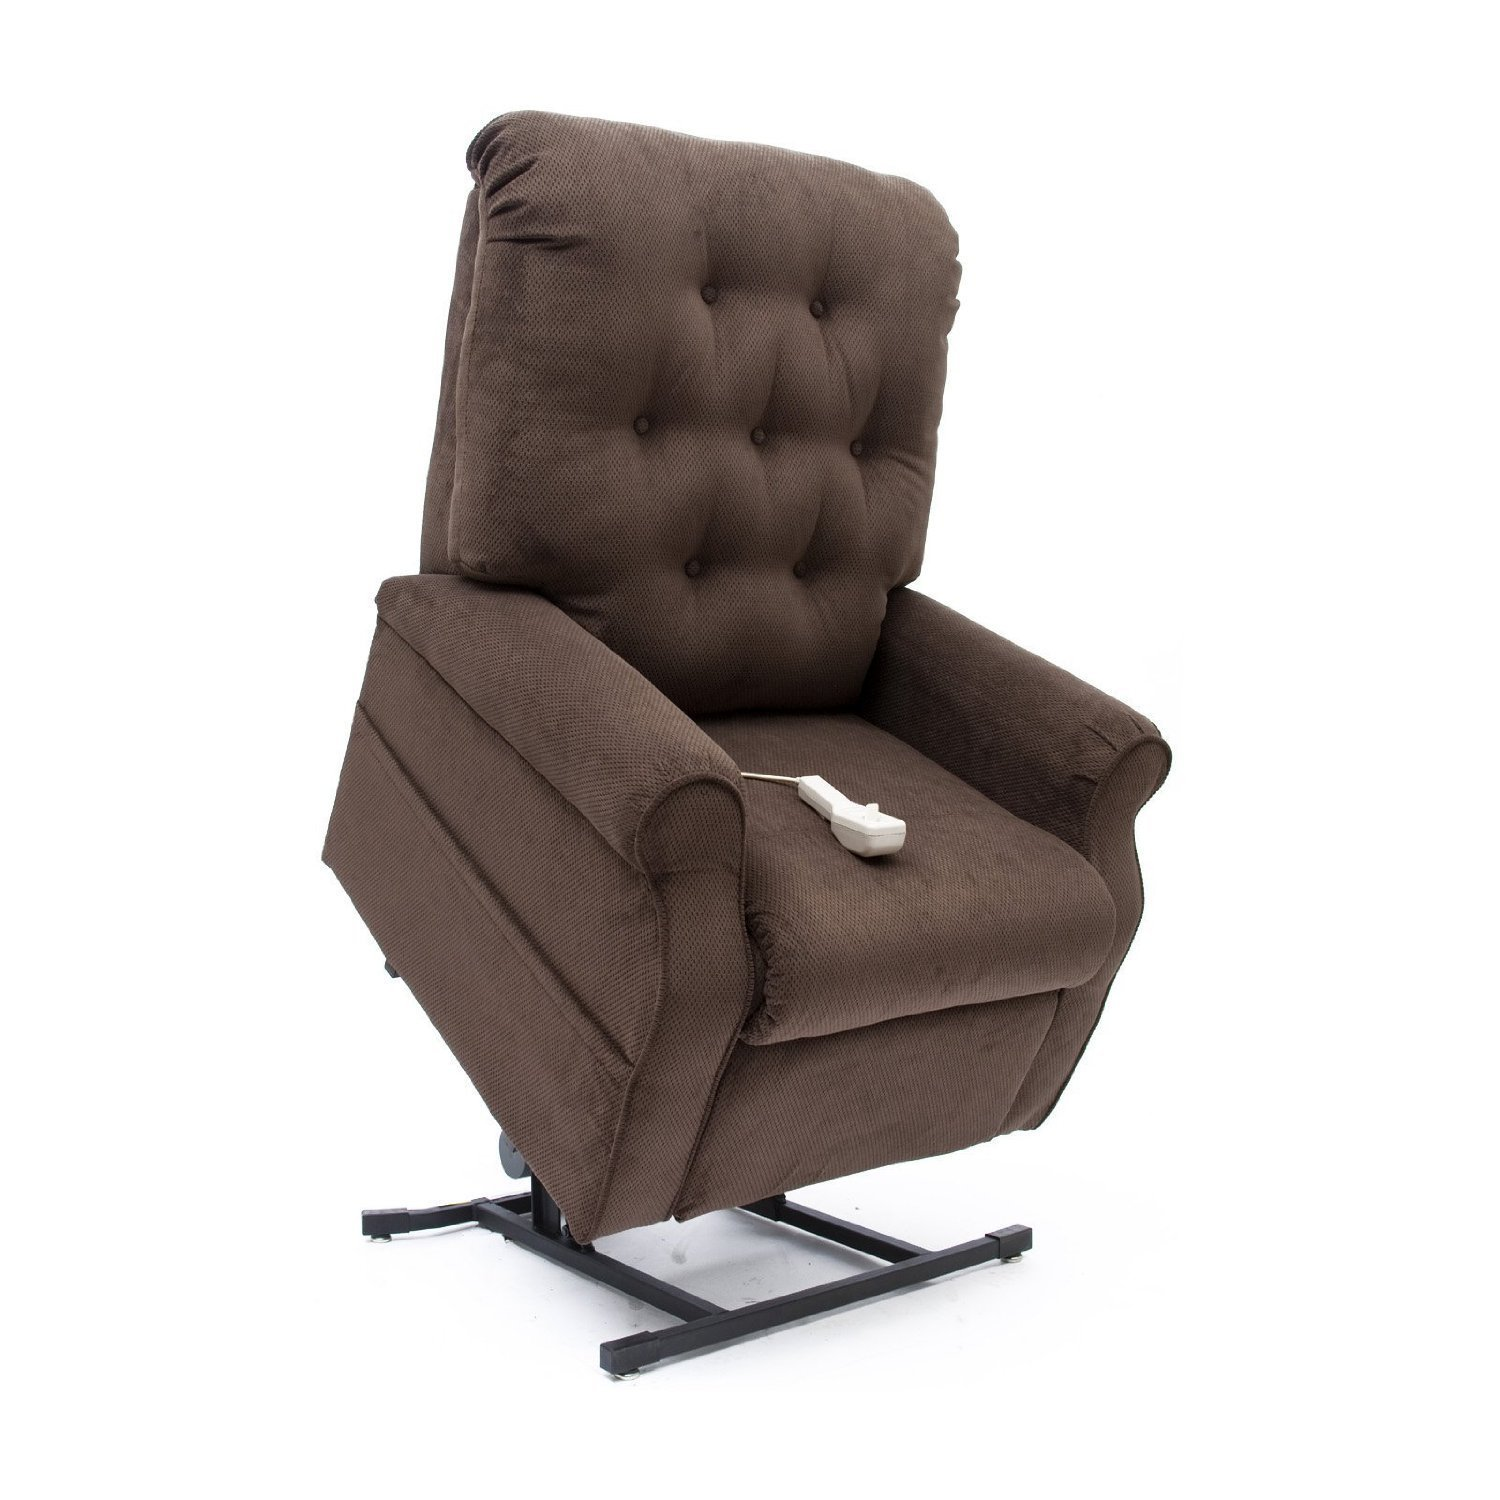 Easy Comfort 3-Position Reclining Power Electric Lift Chair Recliner with Inside Home Delivery and Setup - Chocolate Brown Color Fabric